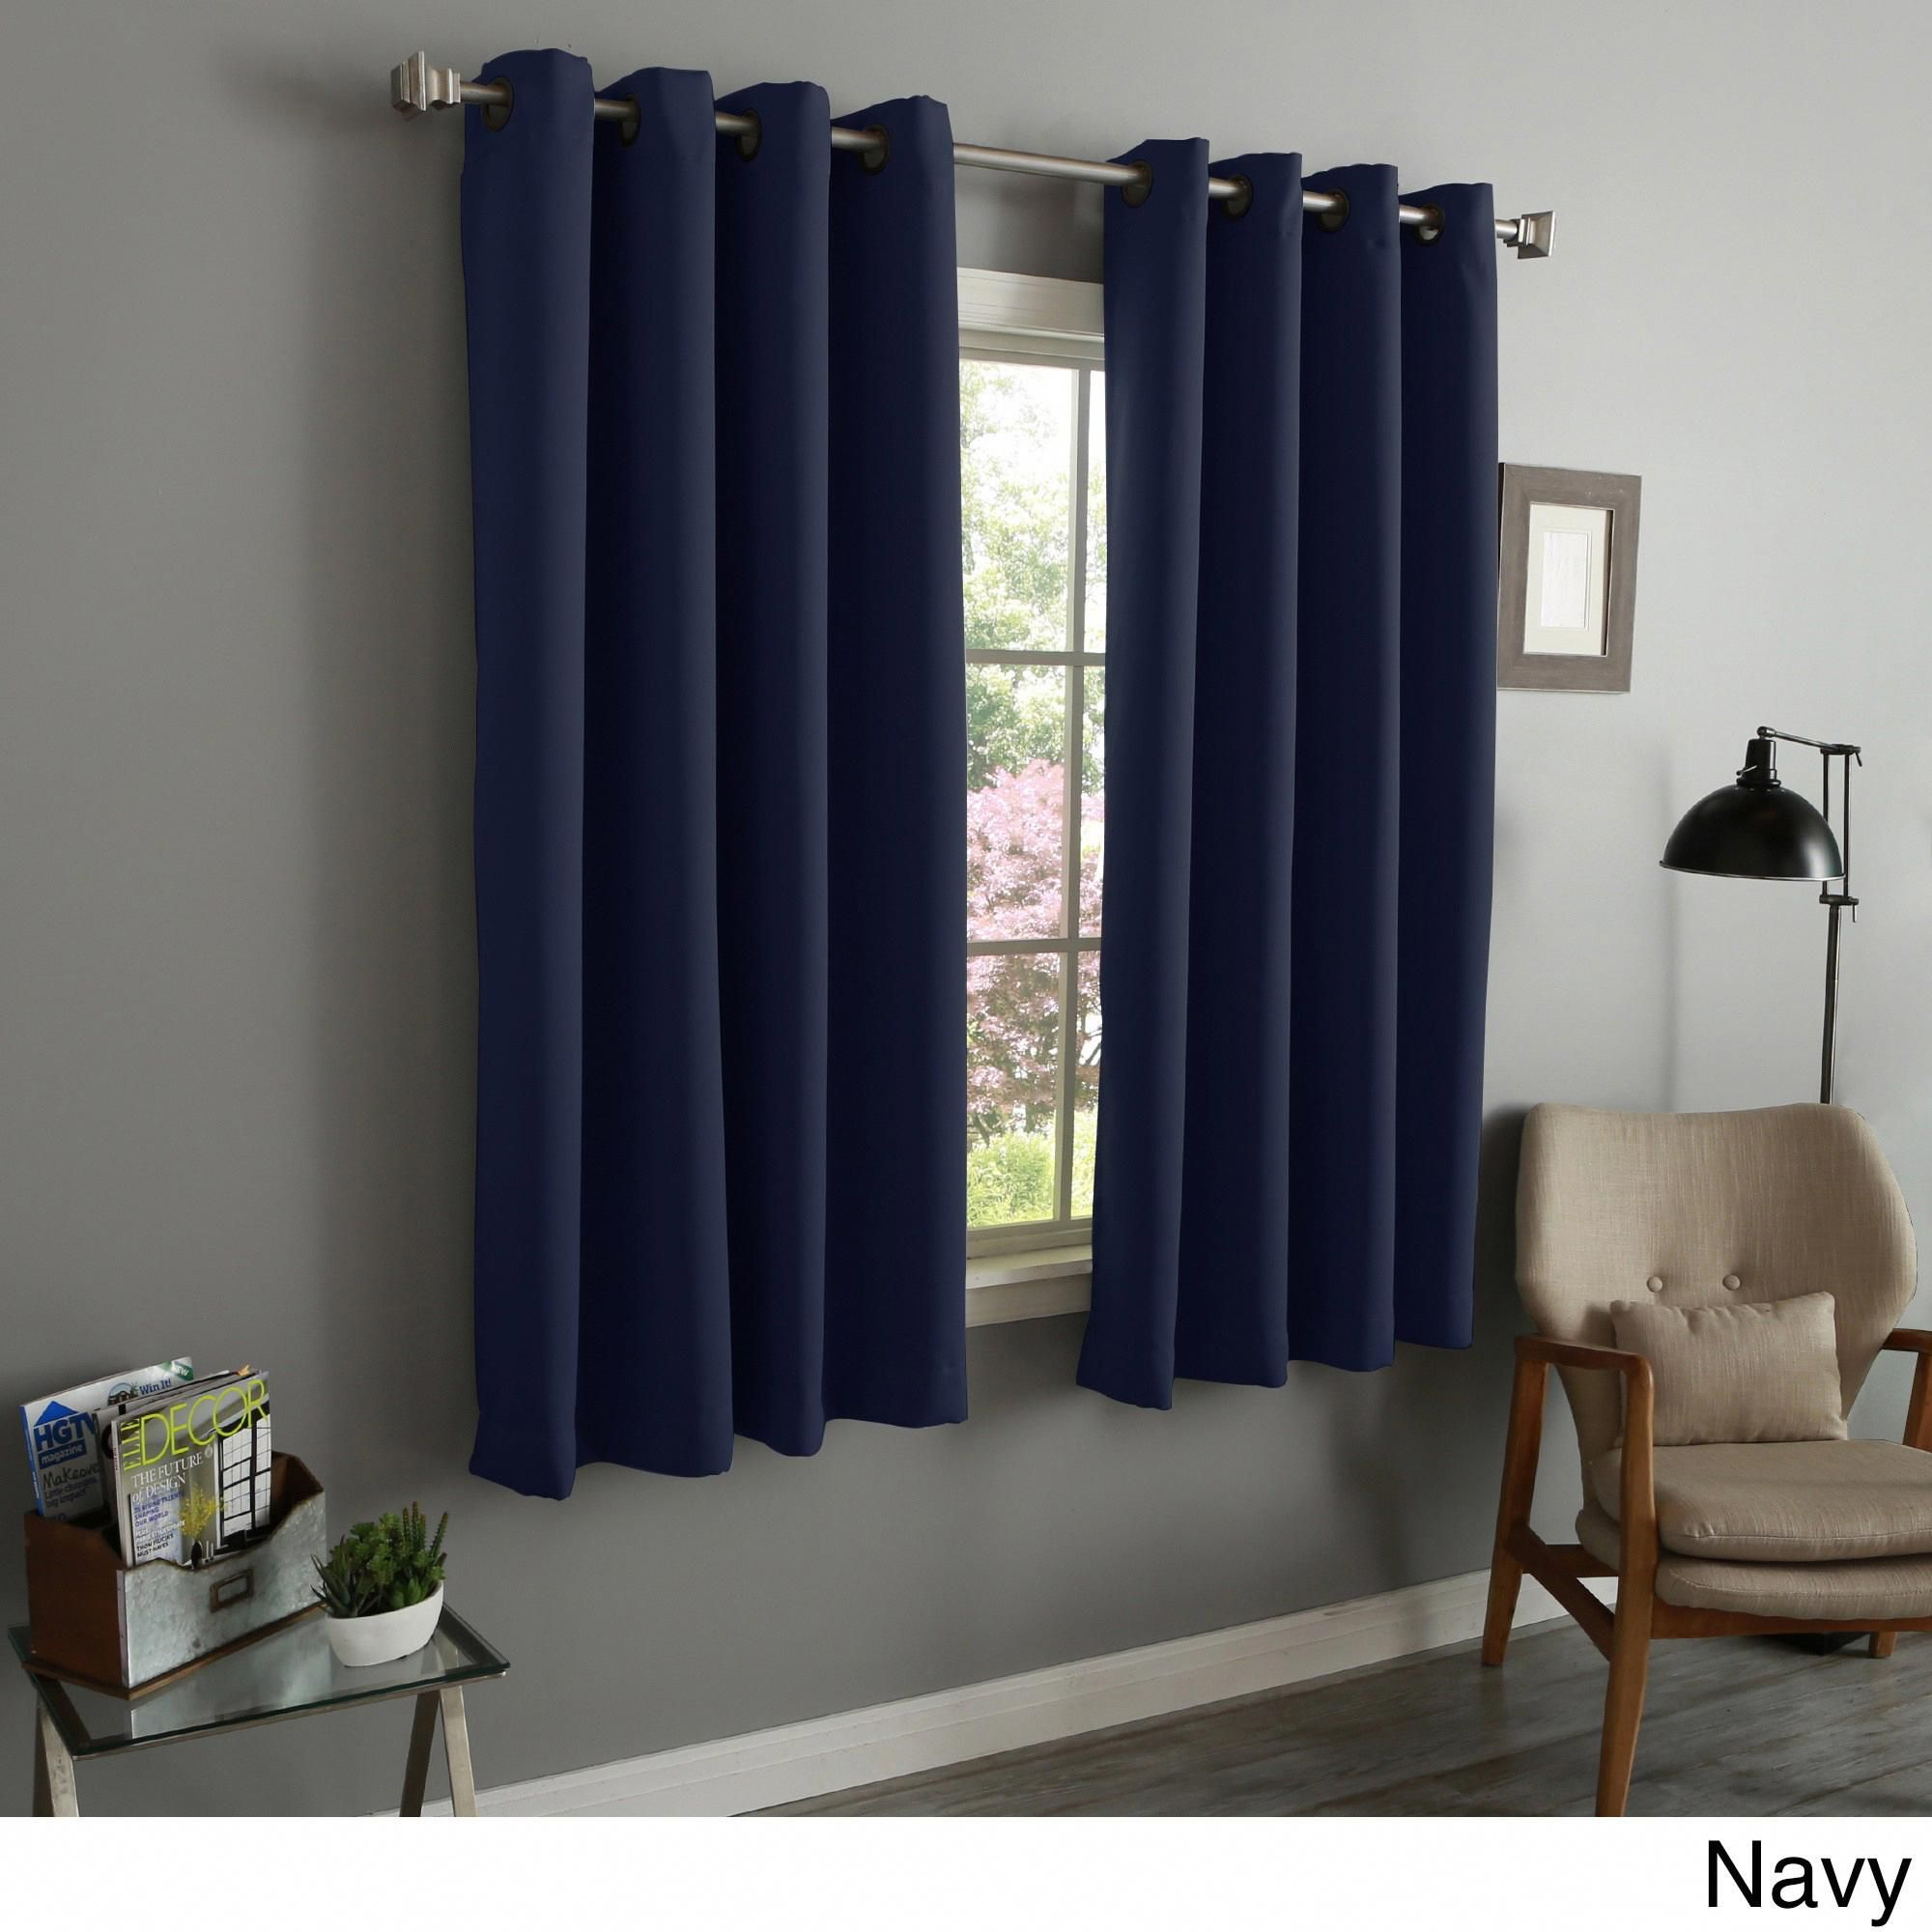 Aurora Home 54 Inch Thermal Insulated Blackout Grommet Top Curtain Panel Pair 52